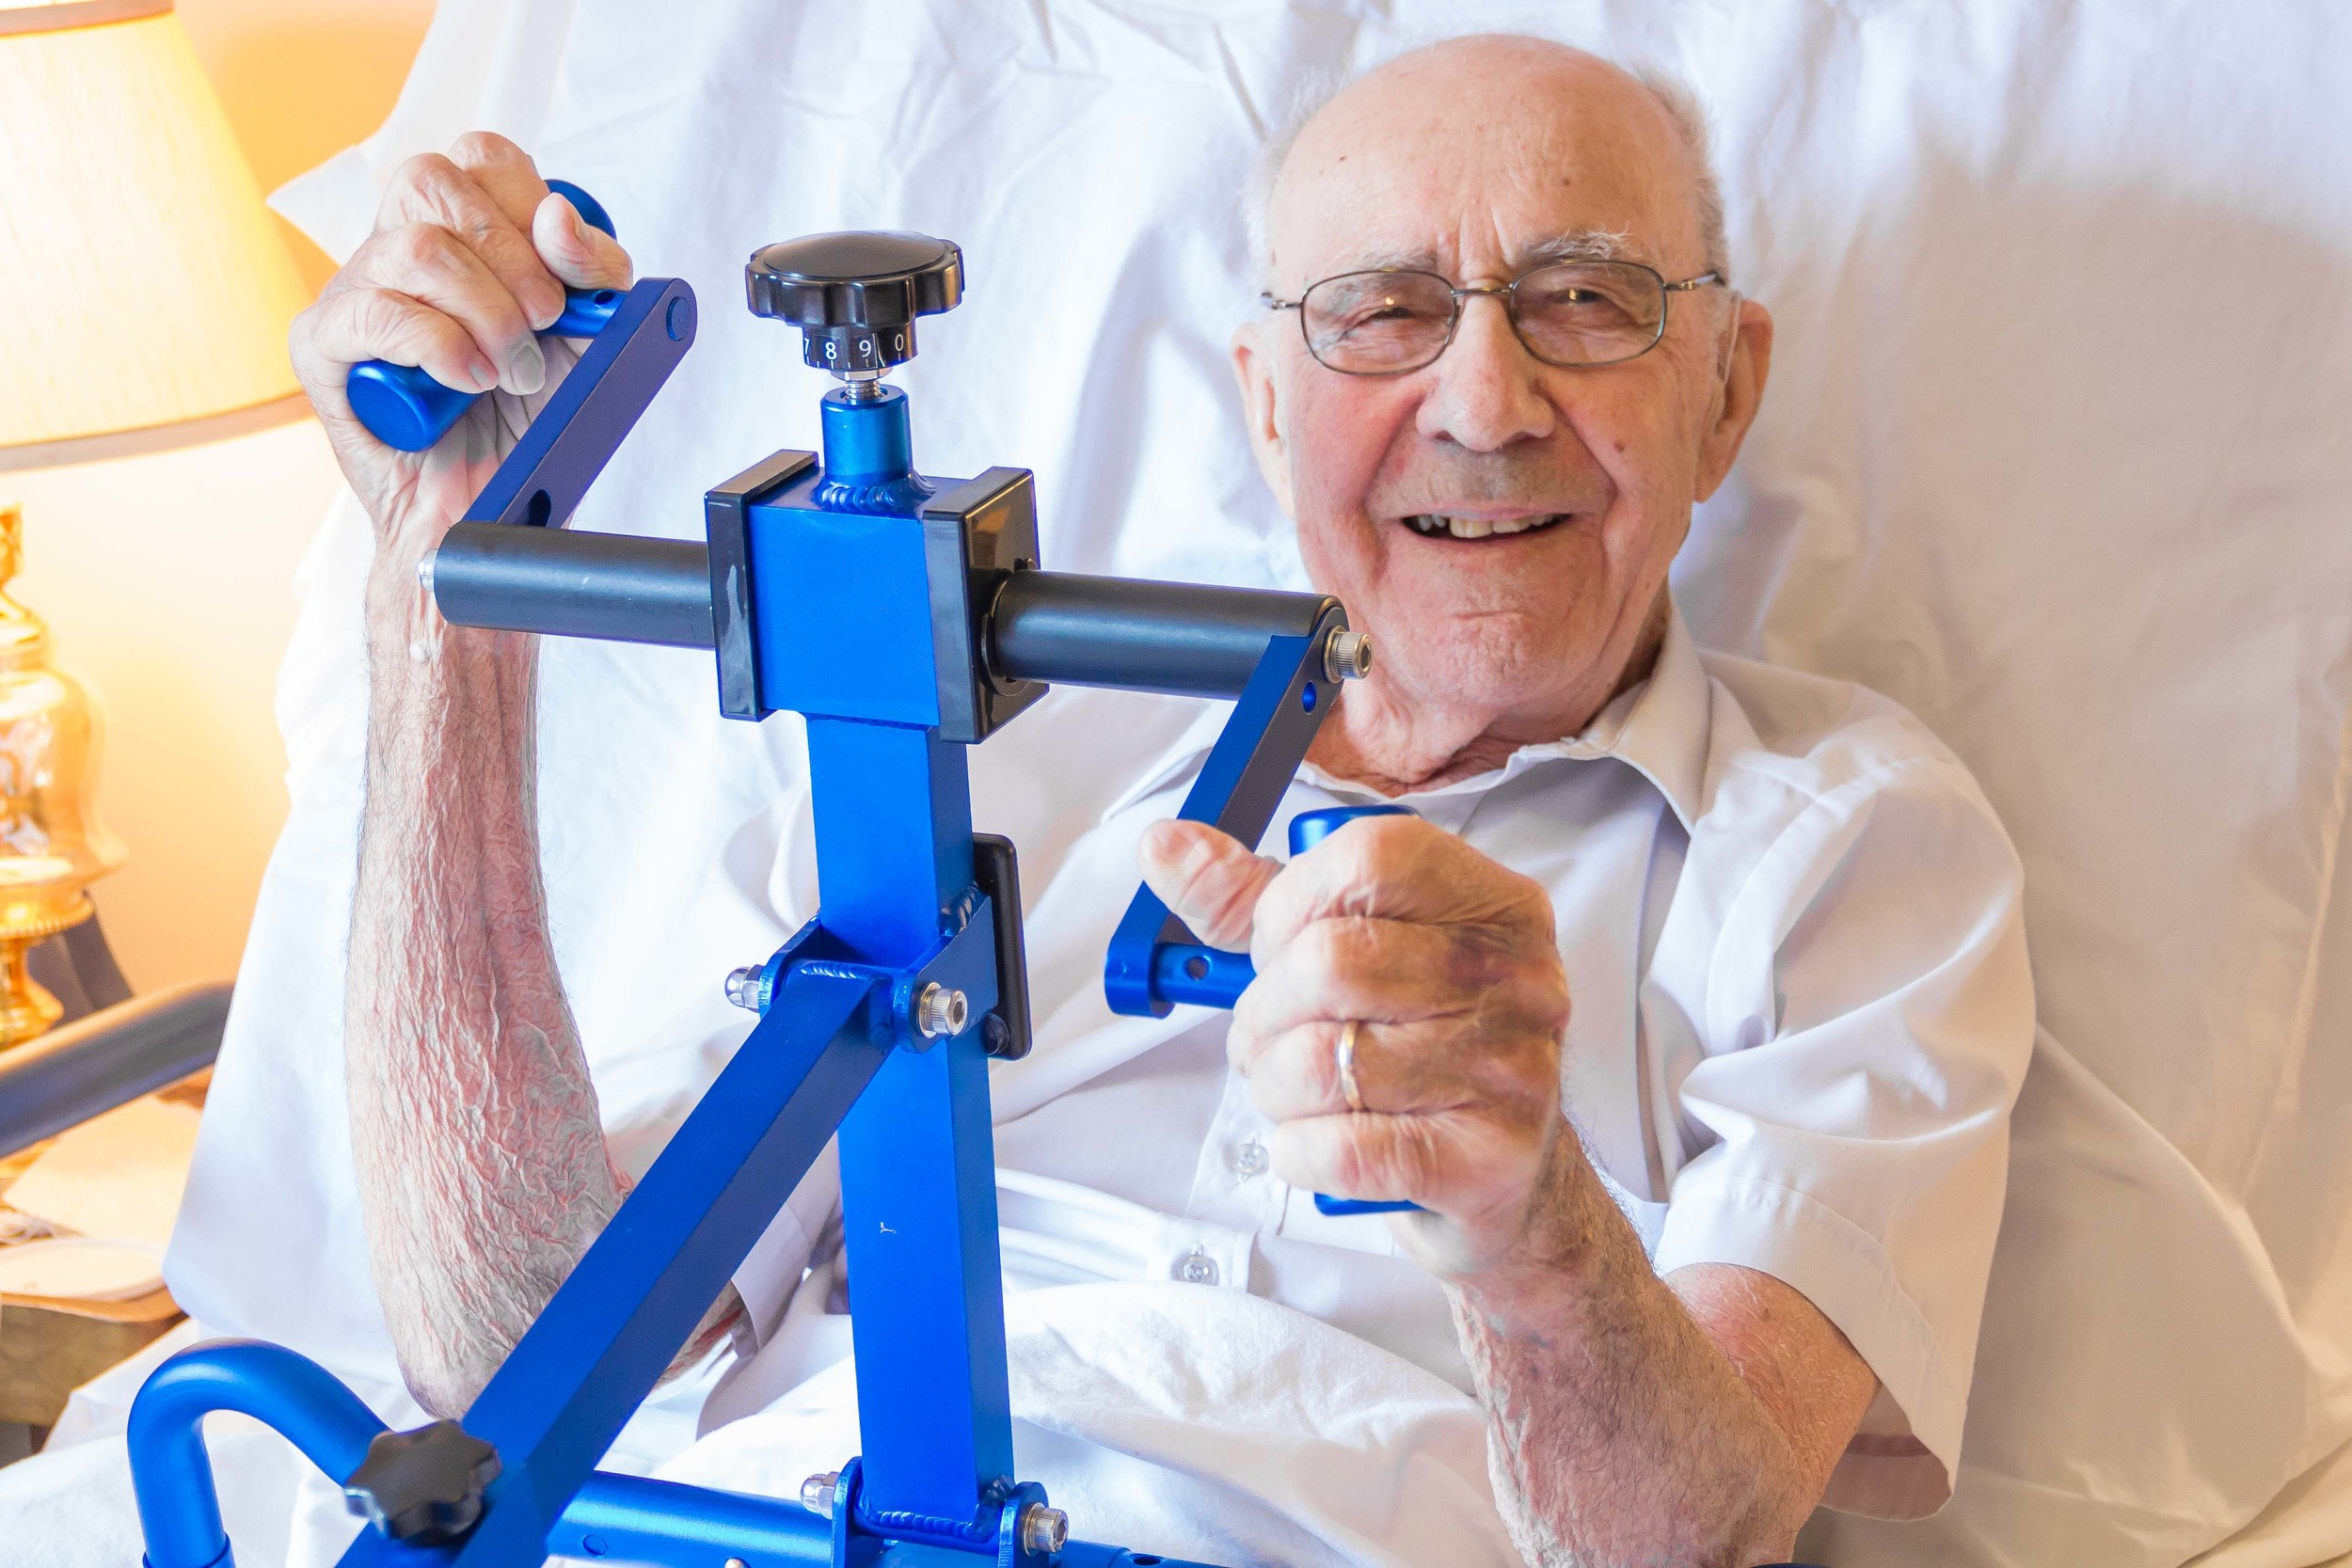 Male senior using BedBike, a portable arm ergometer